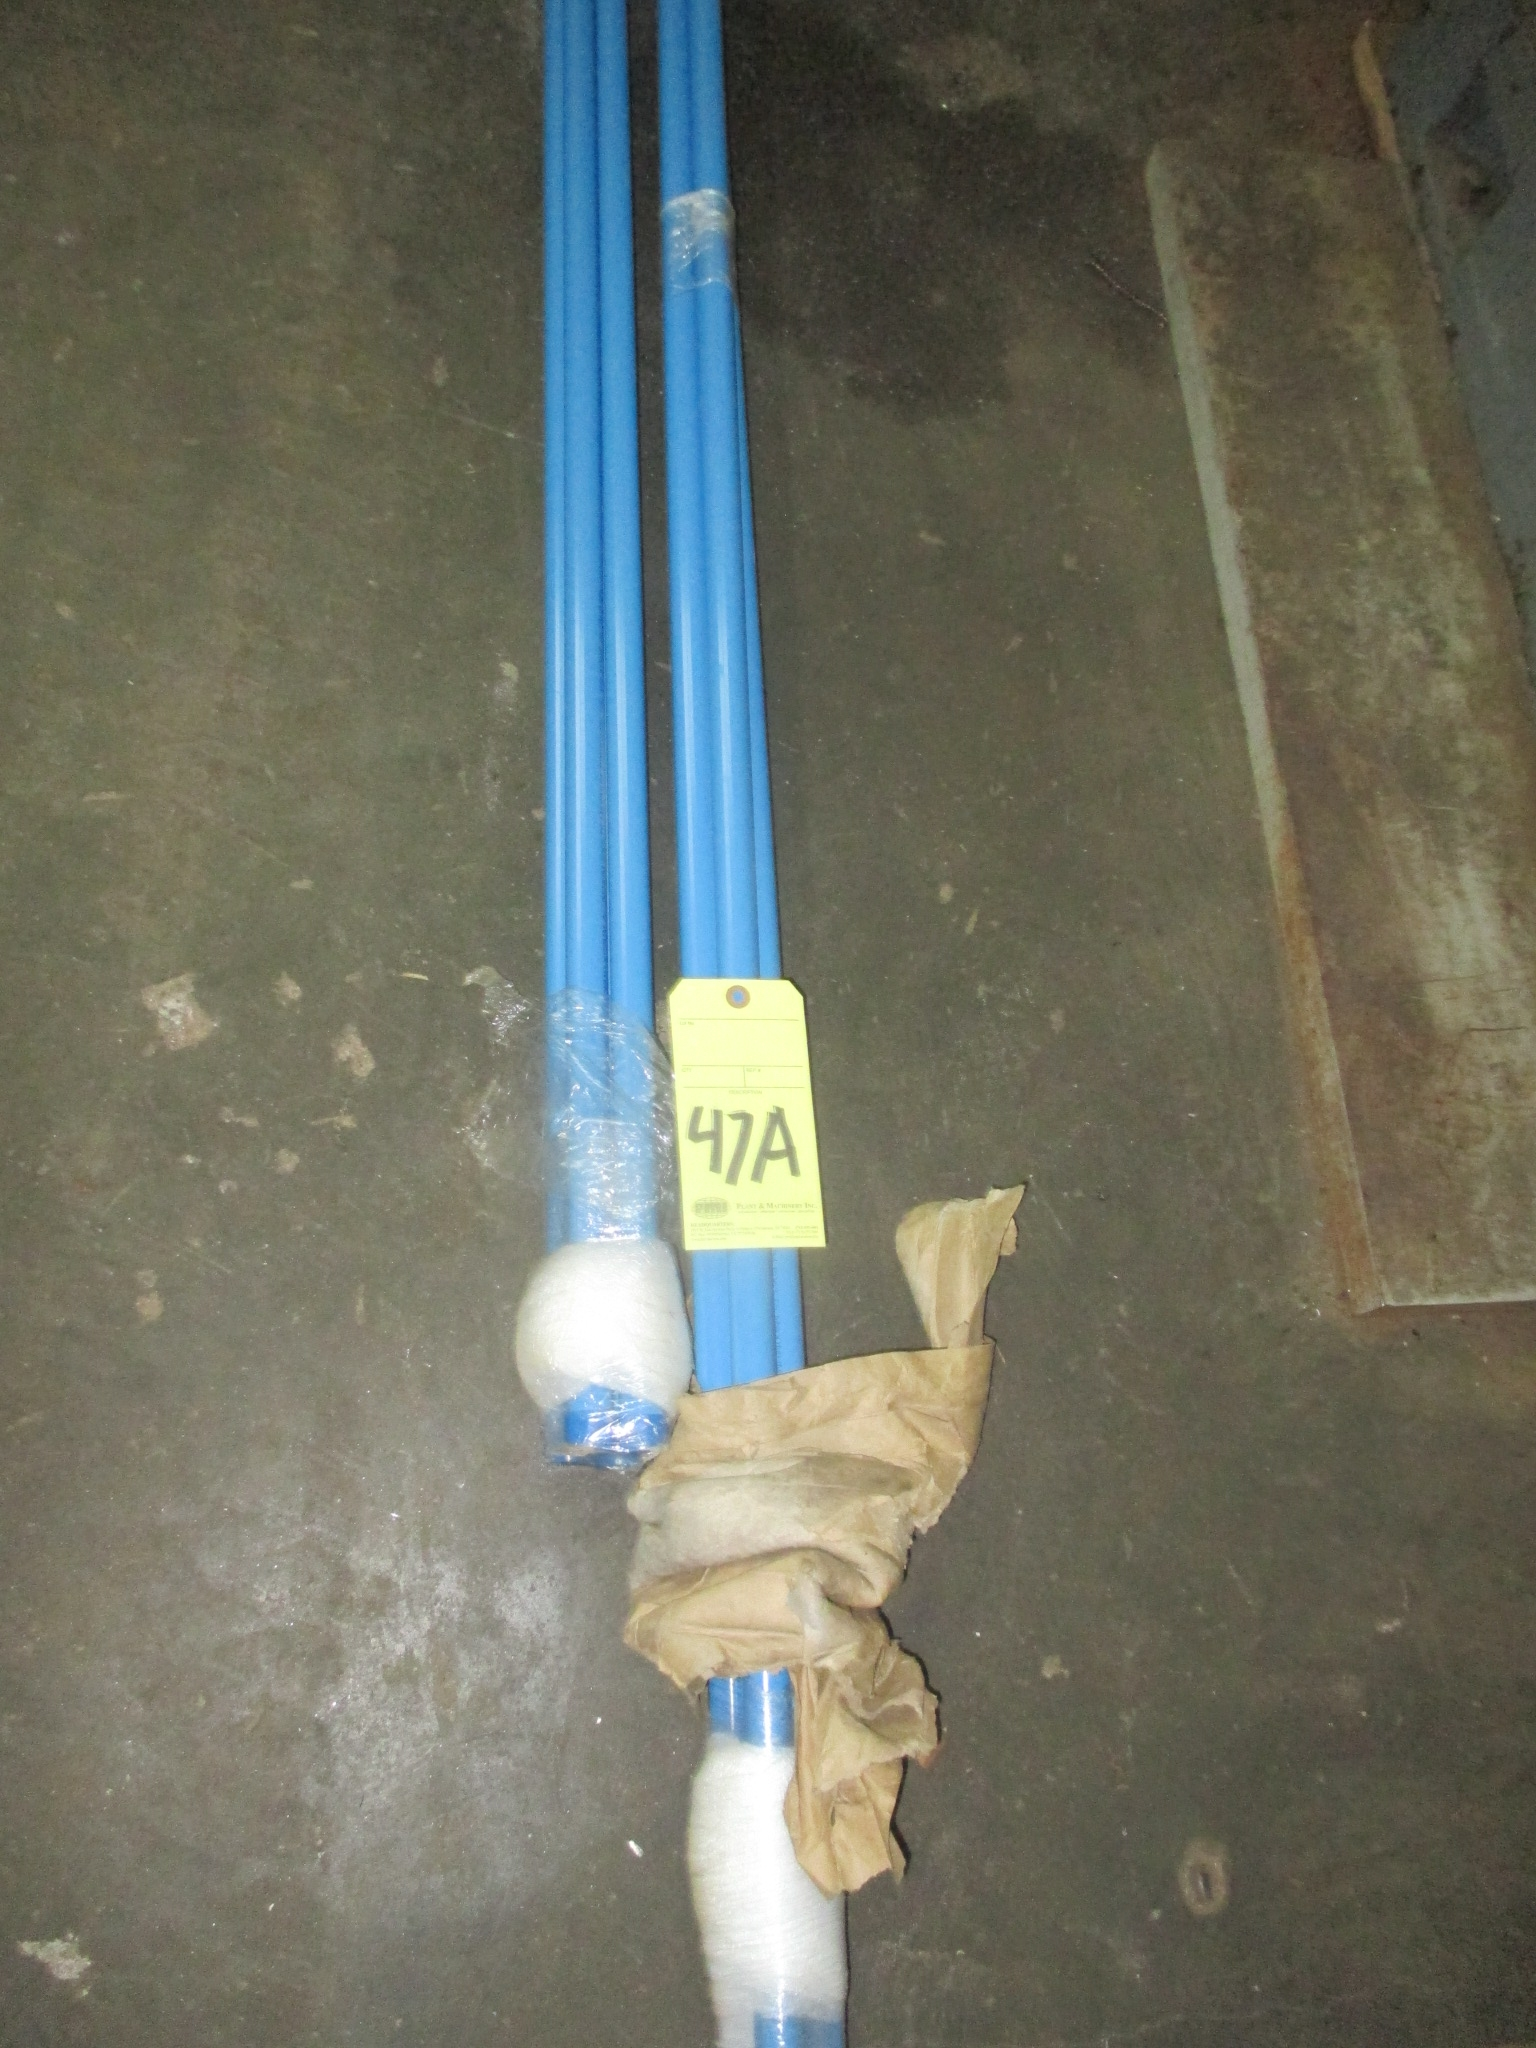 Lot 47A - LOT CONSISTING OF: aluminum air tube, air hose & fittings